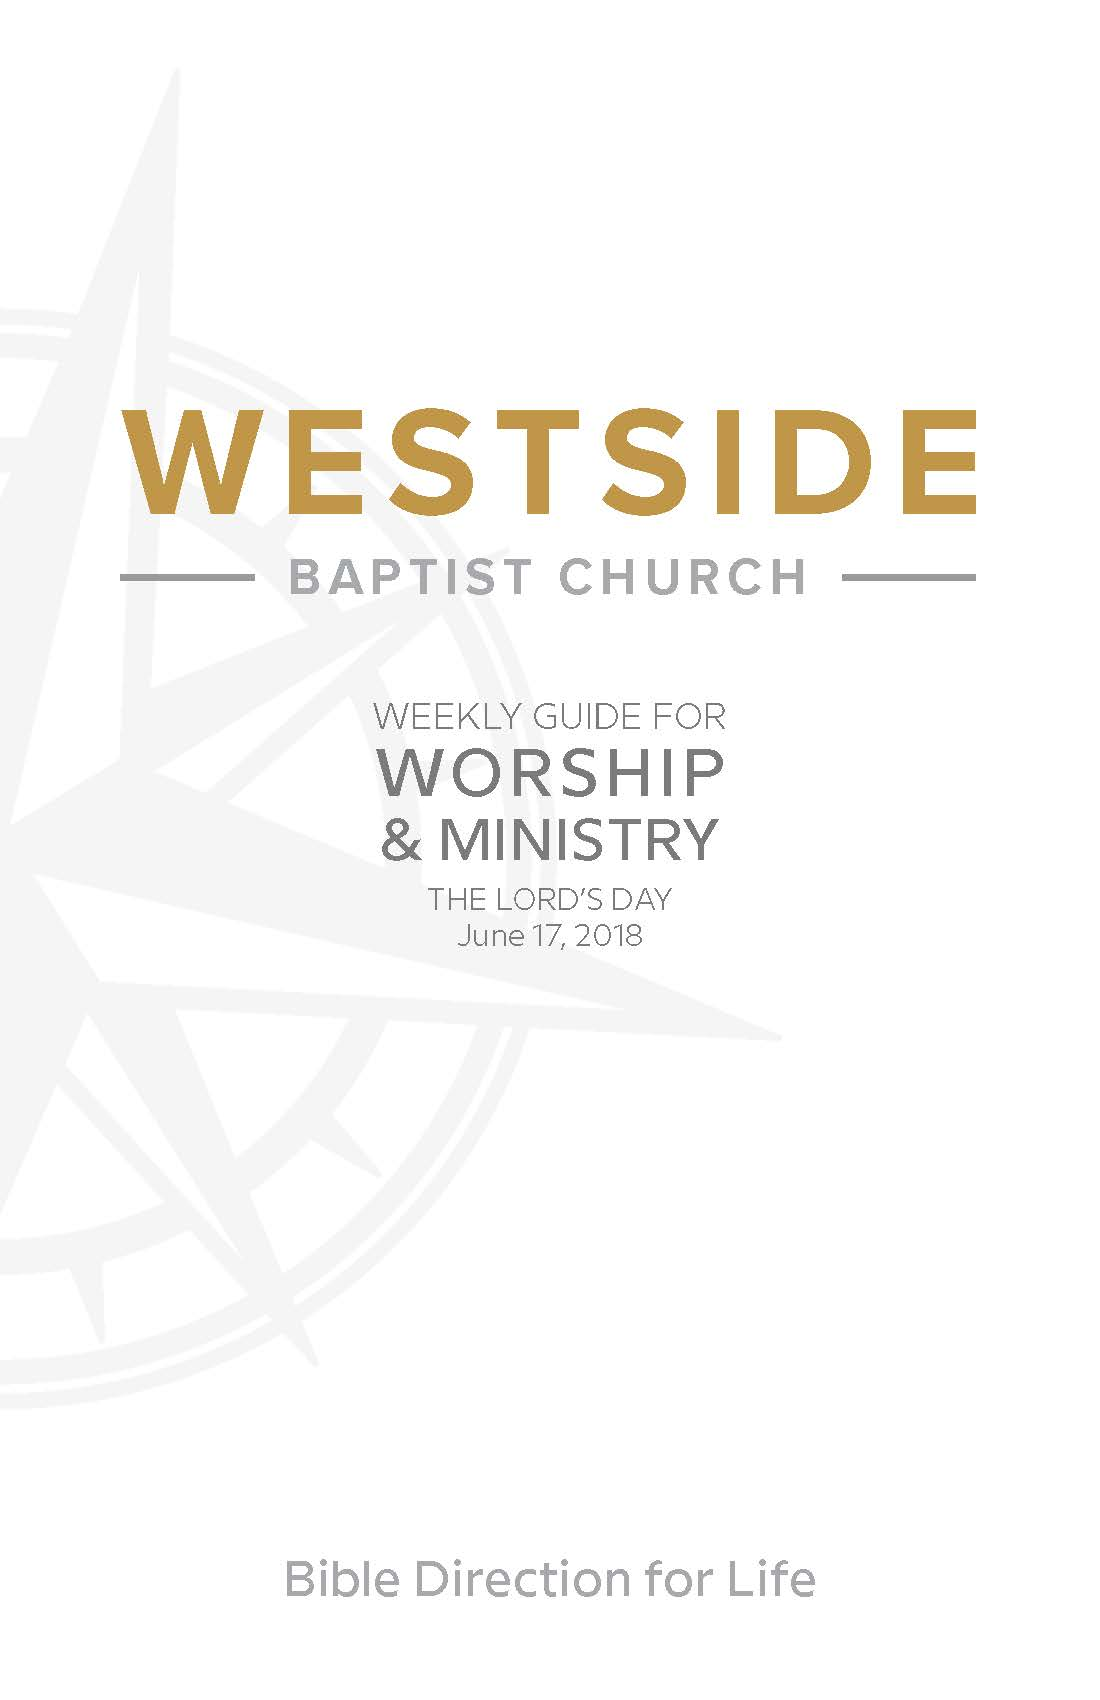 Weekly Guide for Worship and Ministry—June 17